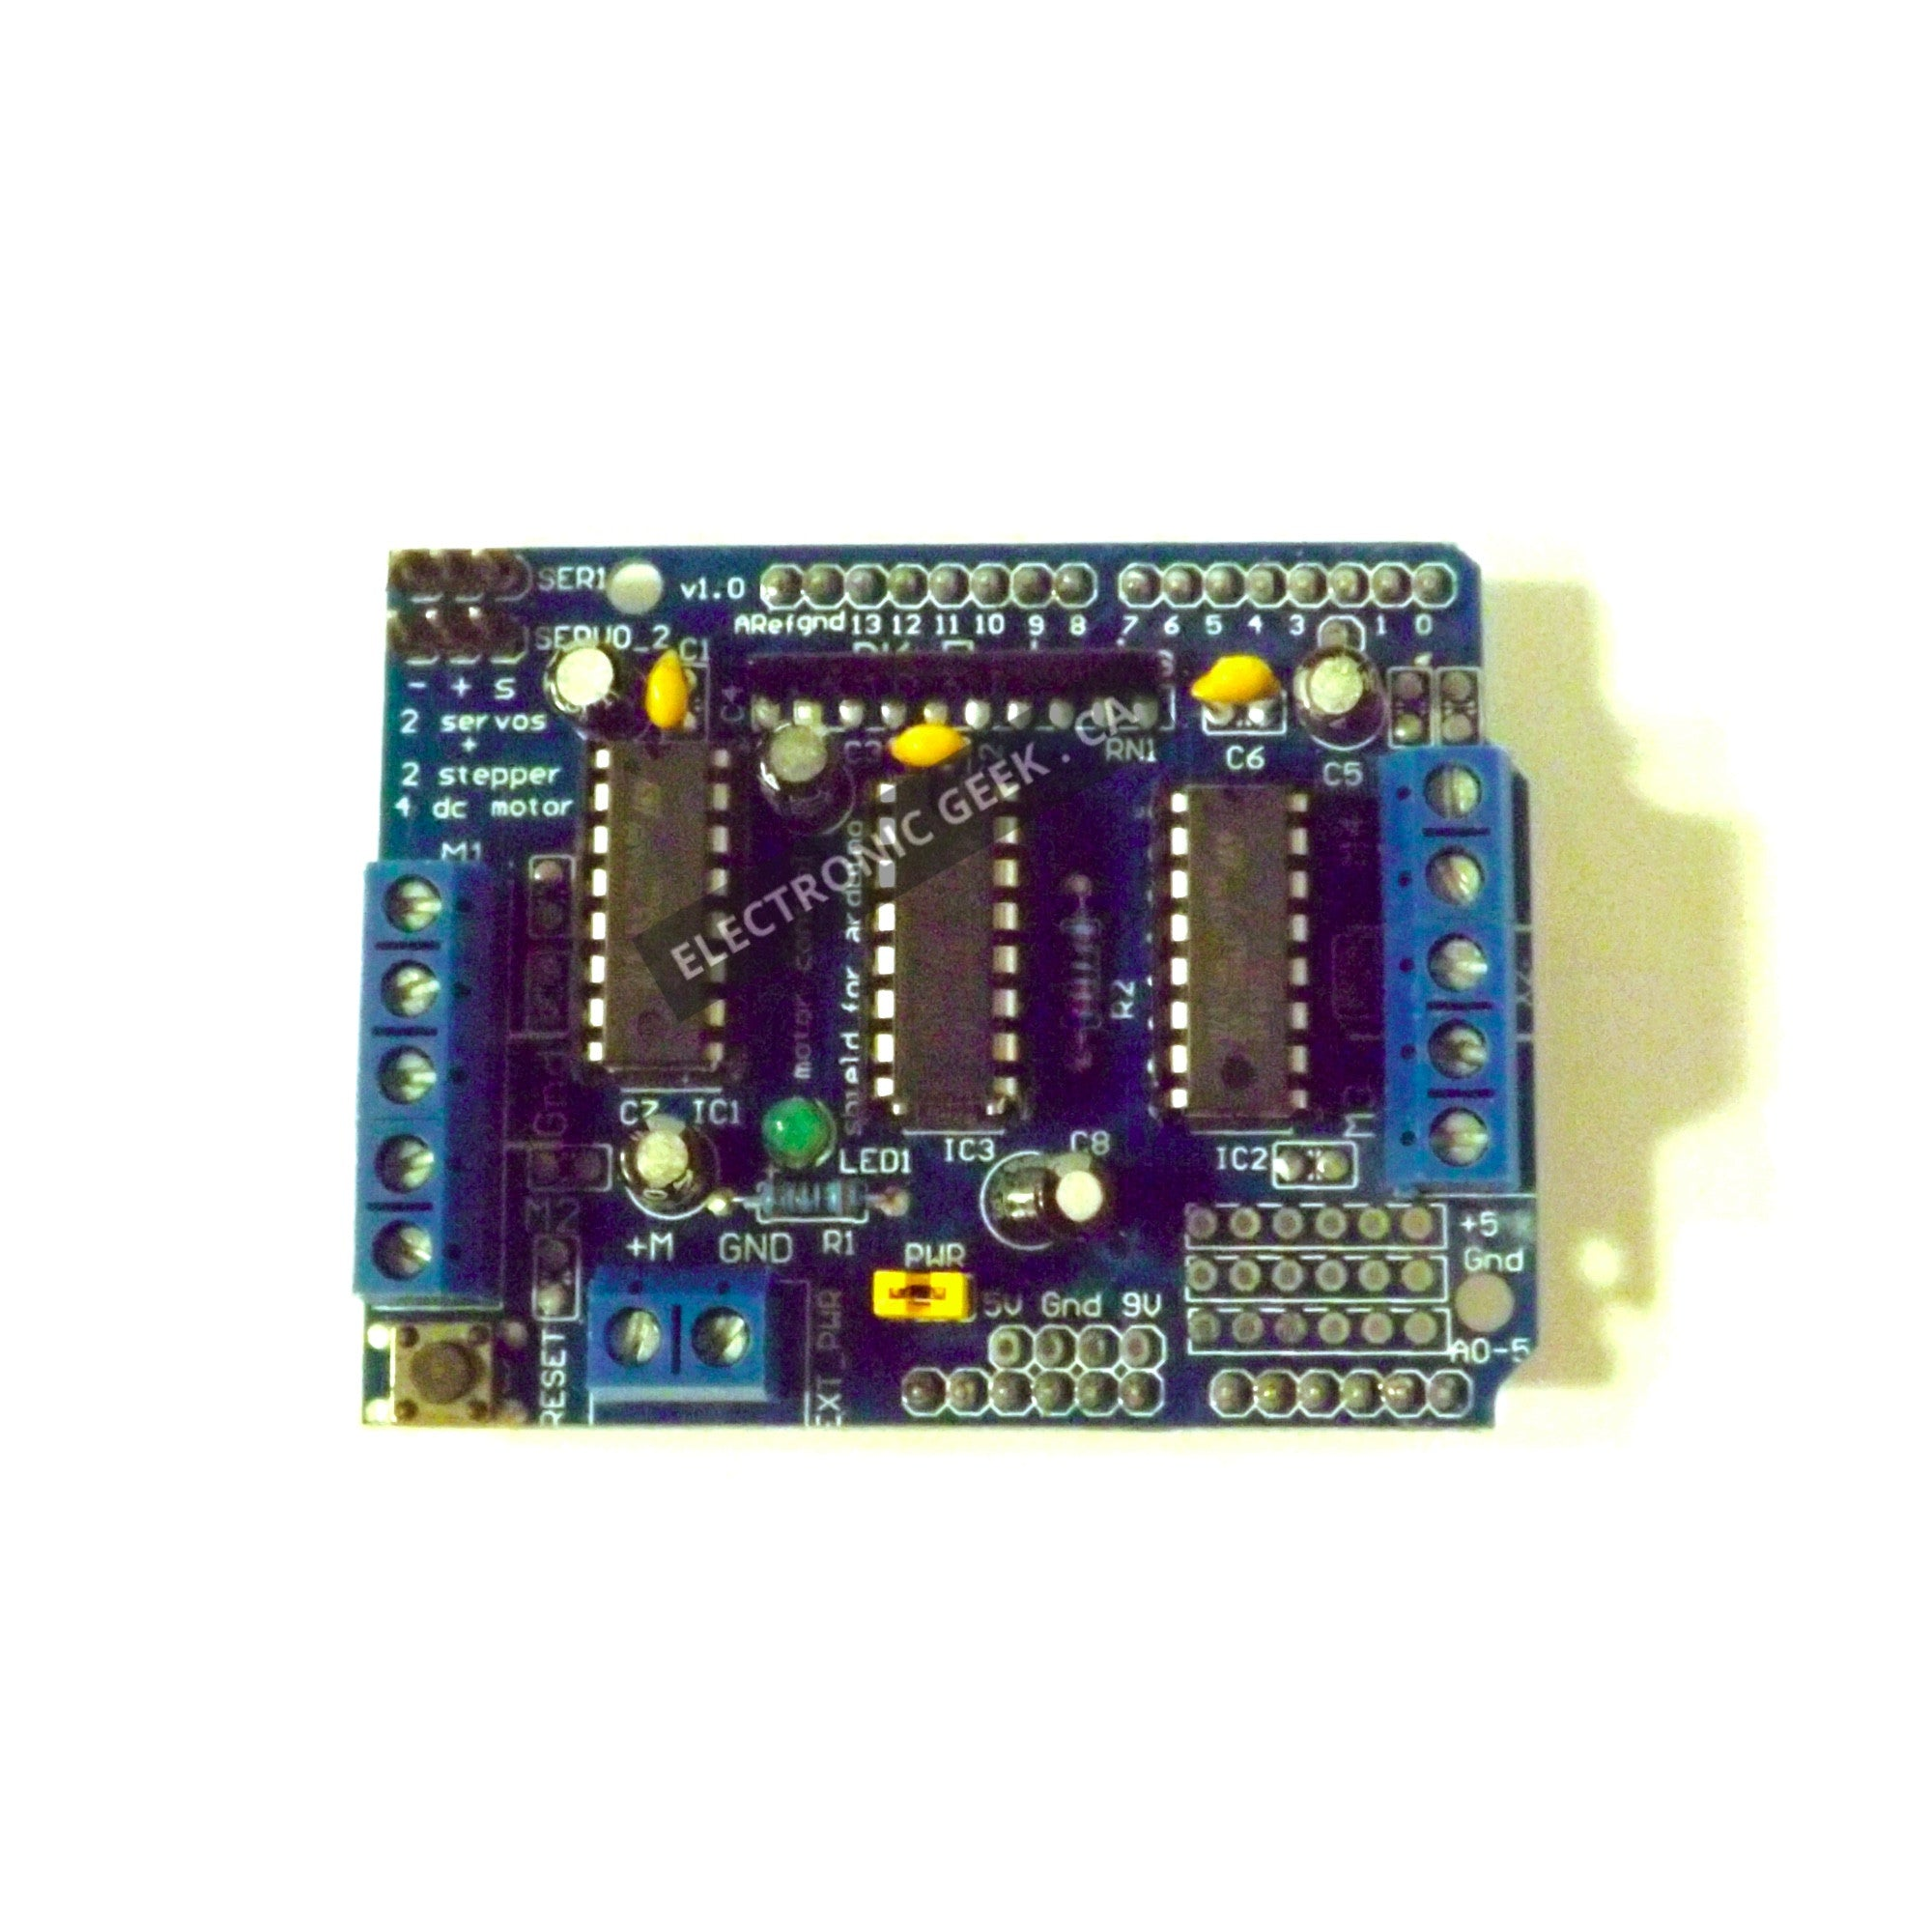 Arduino Accessories Tagged All Items Page 2 Mq2 Smoke Sensor Circuit Built With An L293d Motor Control Shield For